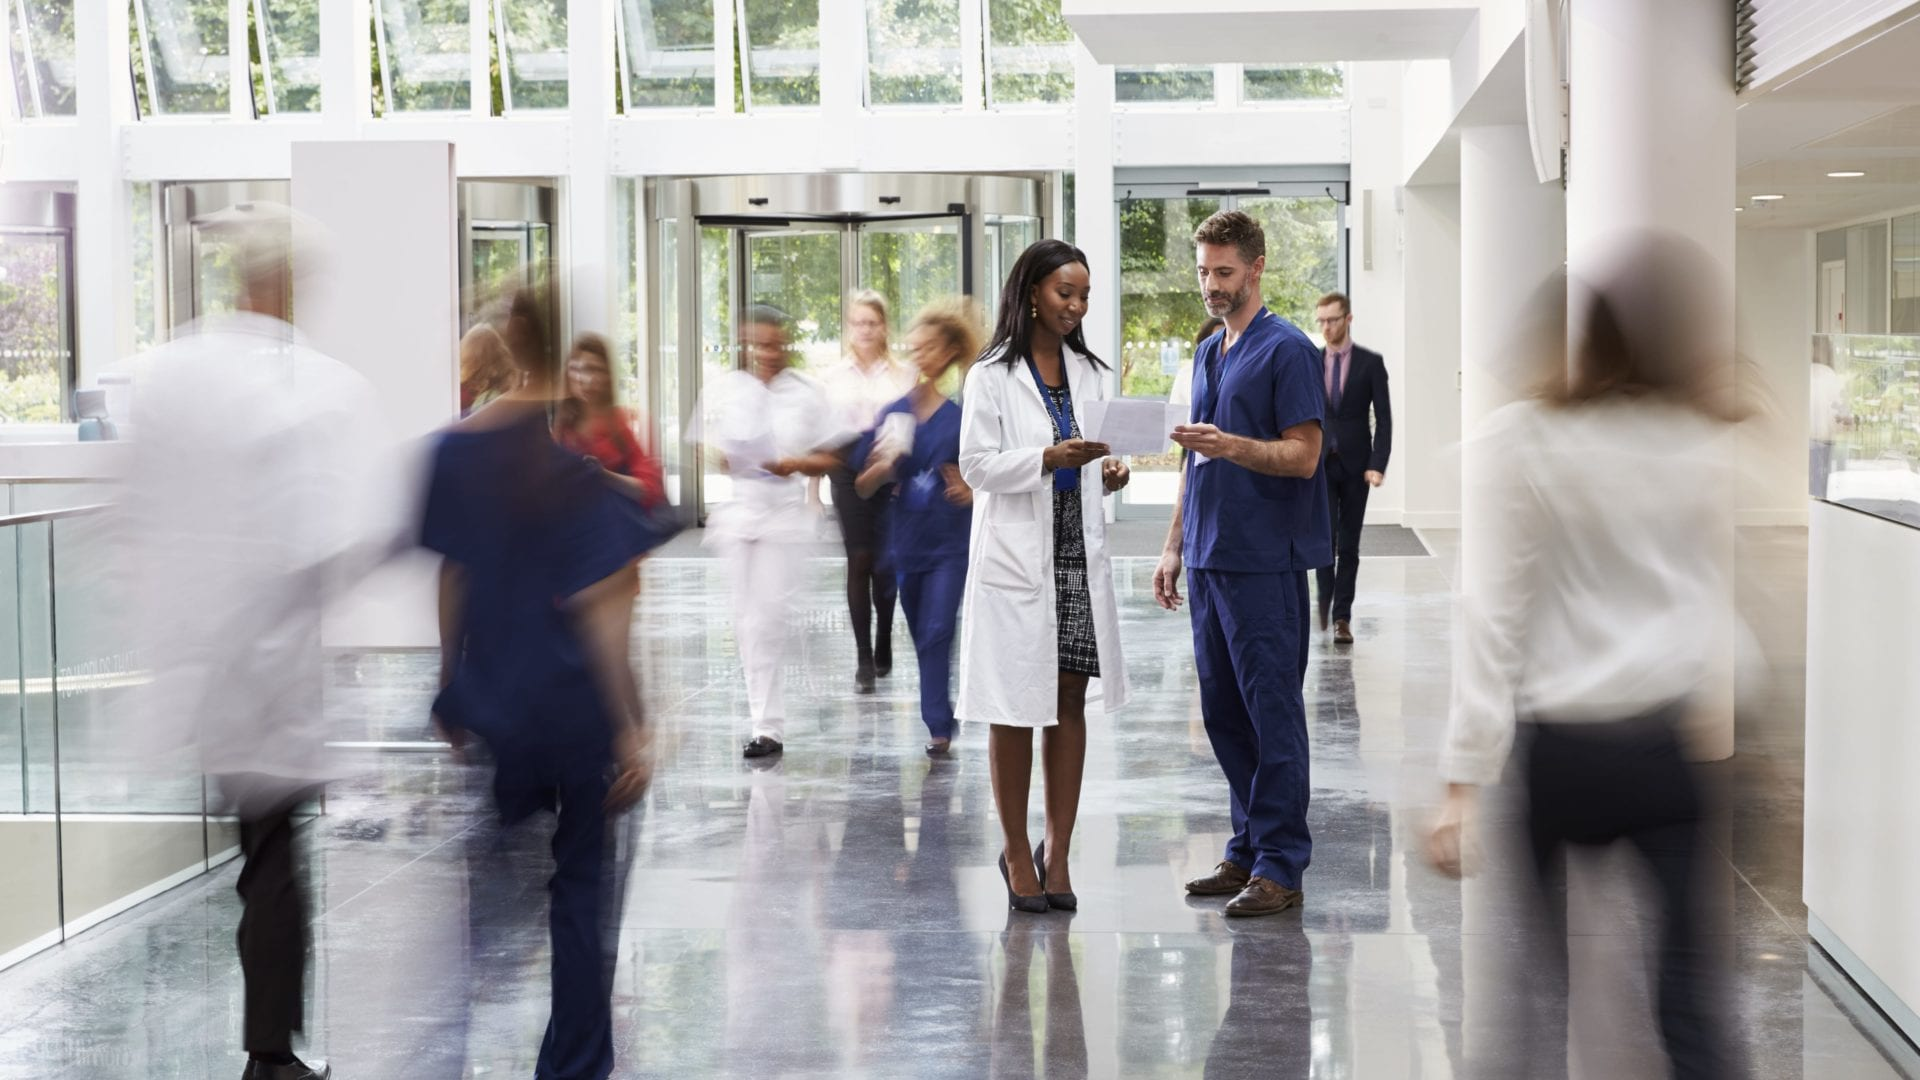 Understanding HR challenges within the private acute healthcare sector